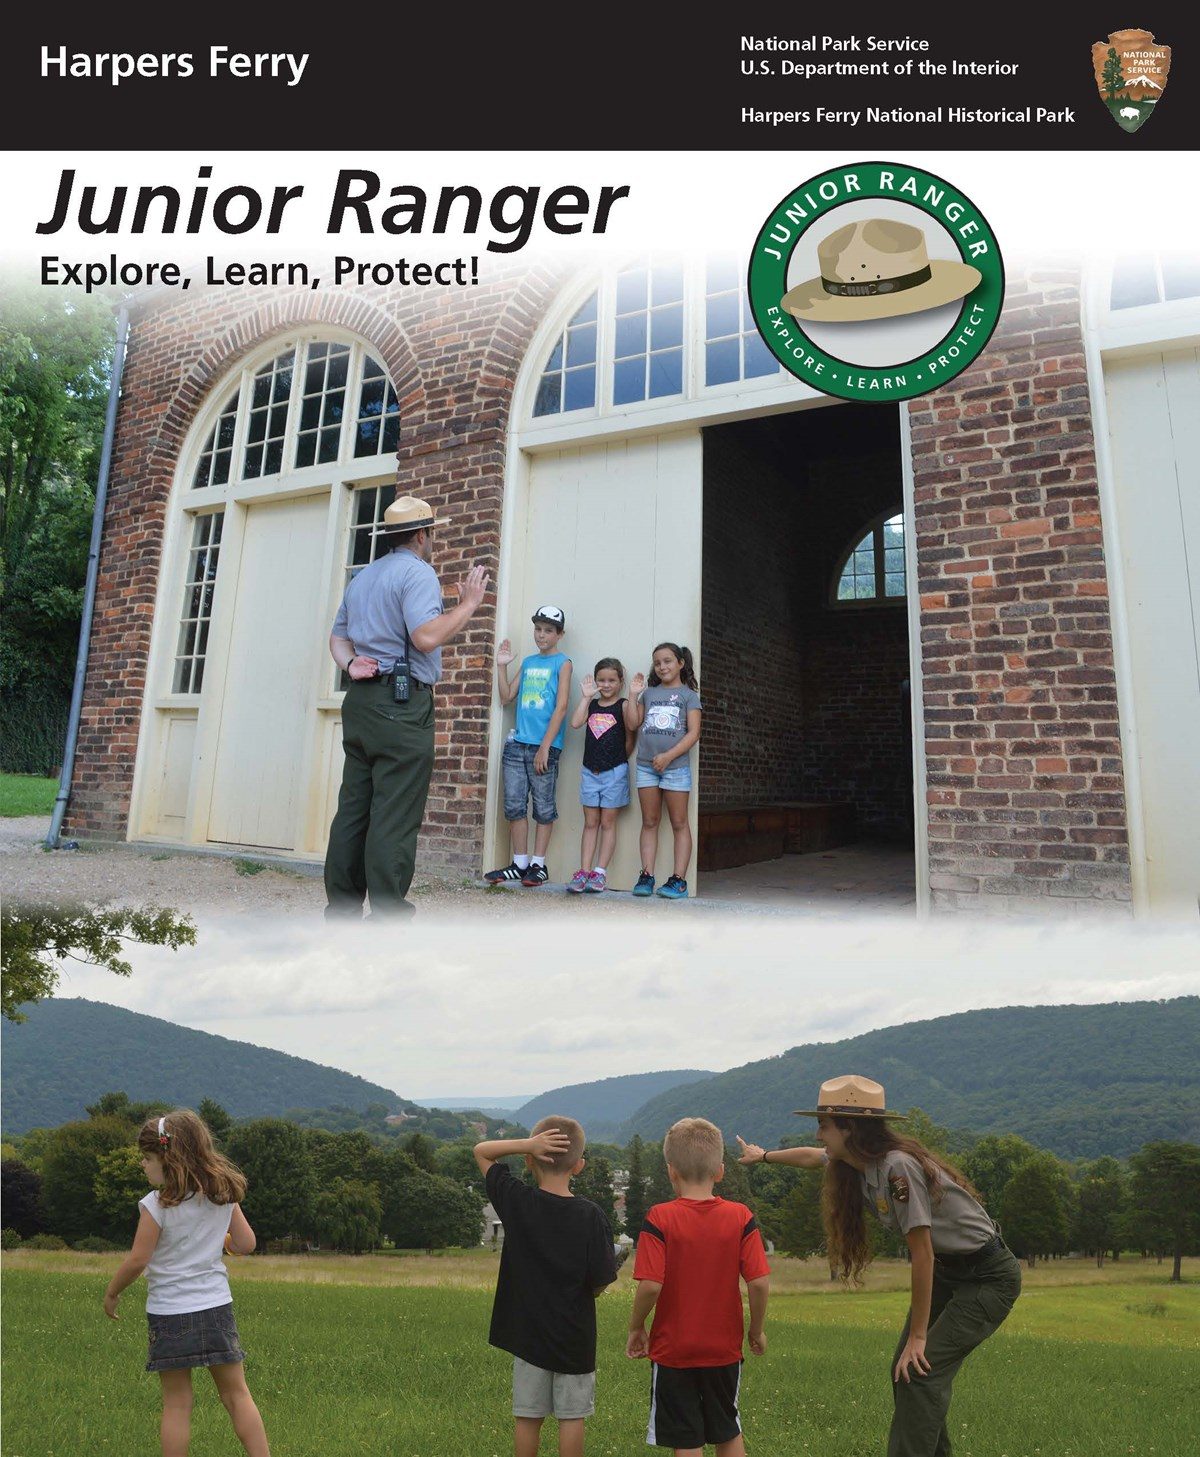 Junior Ranger Booklet cover; shows image of park ranger swearing in Junior Rangers and image of park ranger pointing out scenery to kids